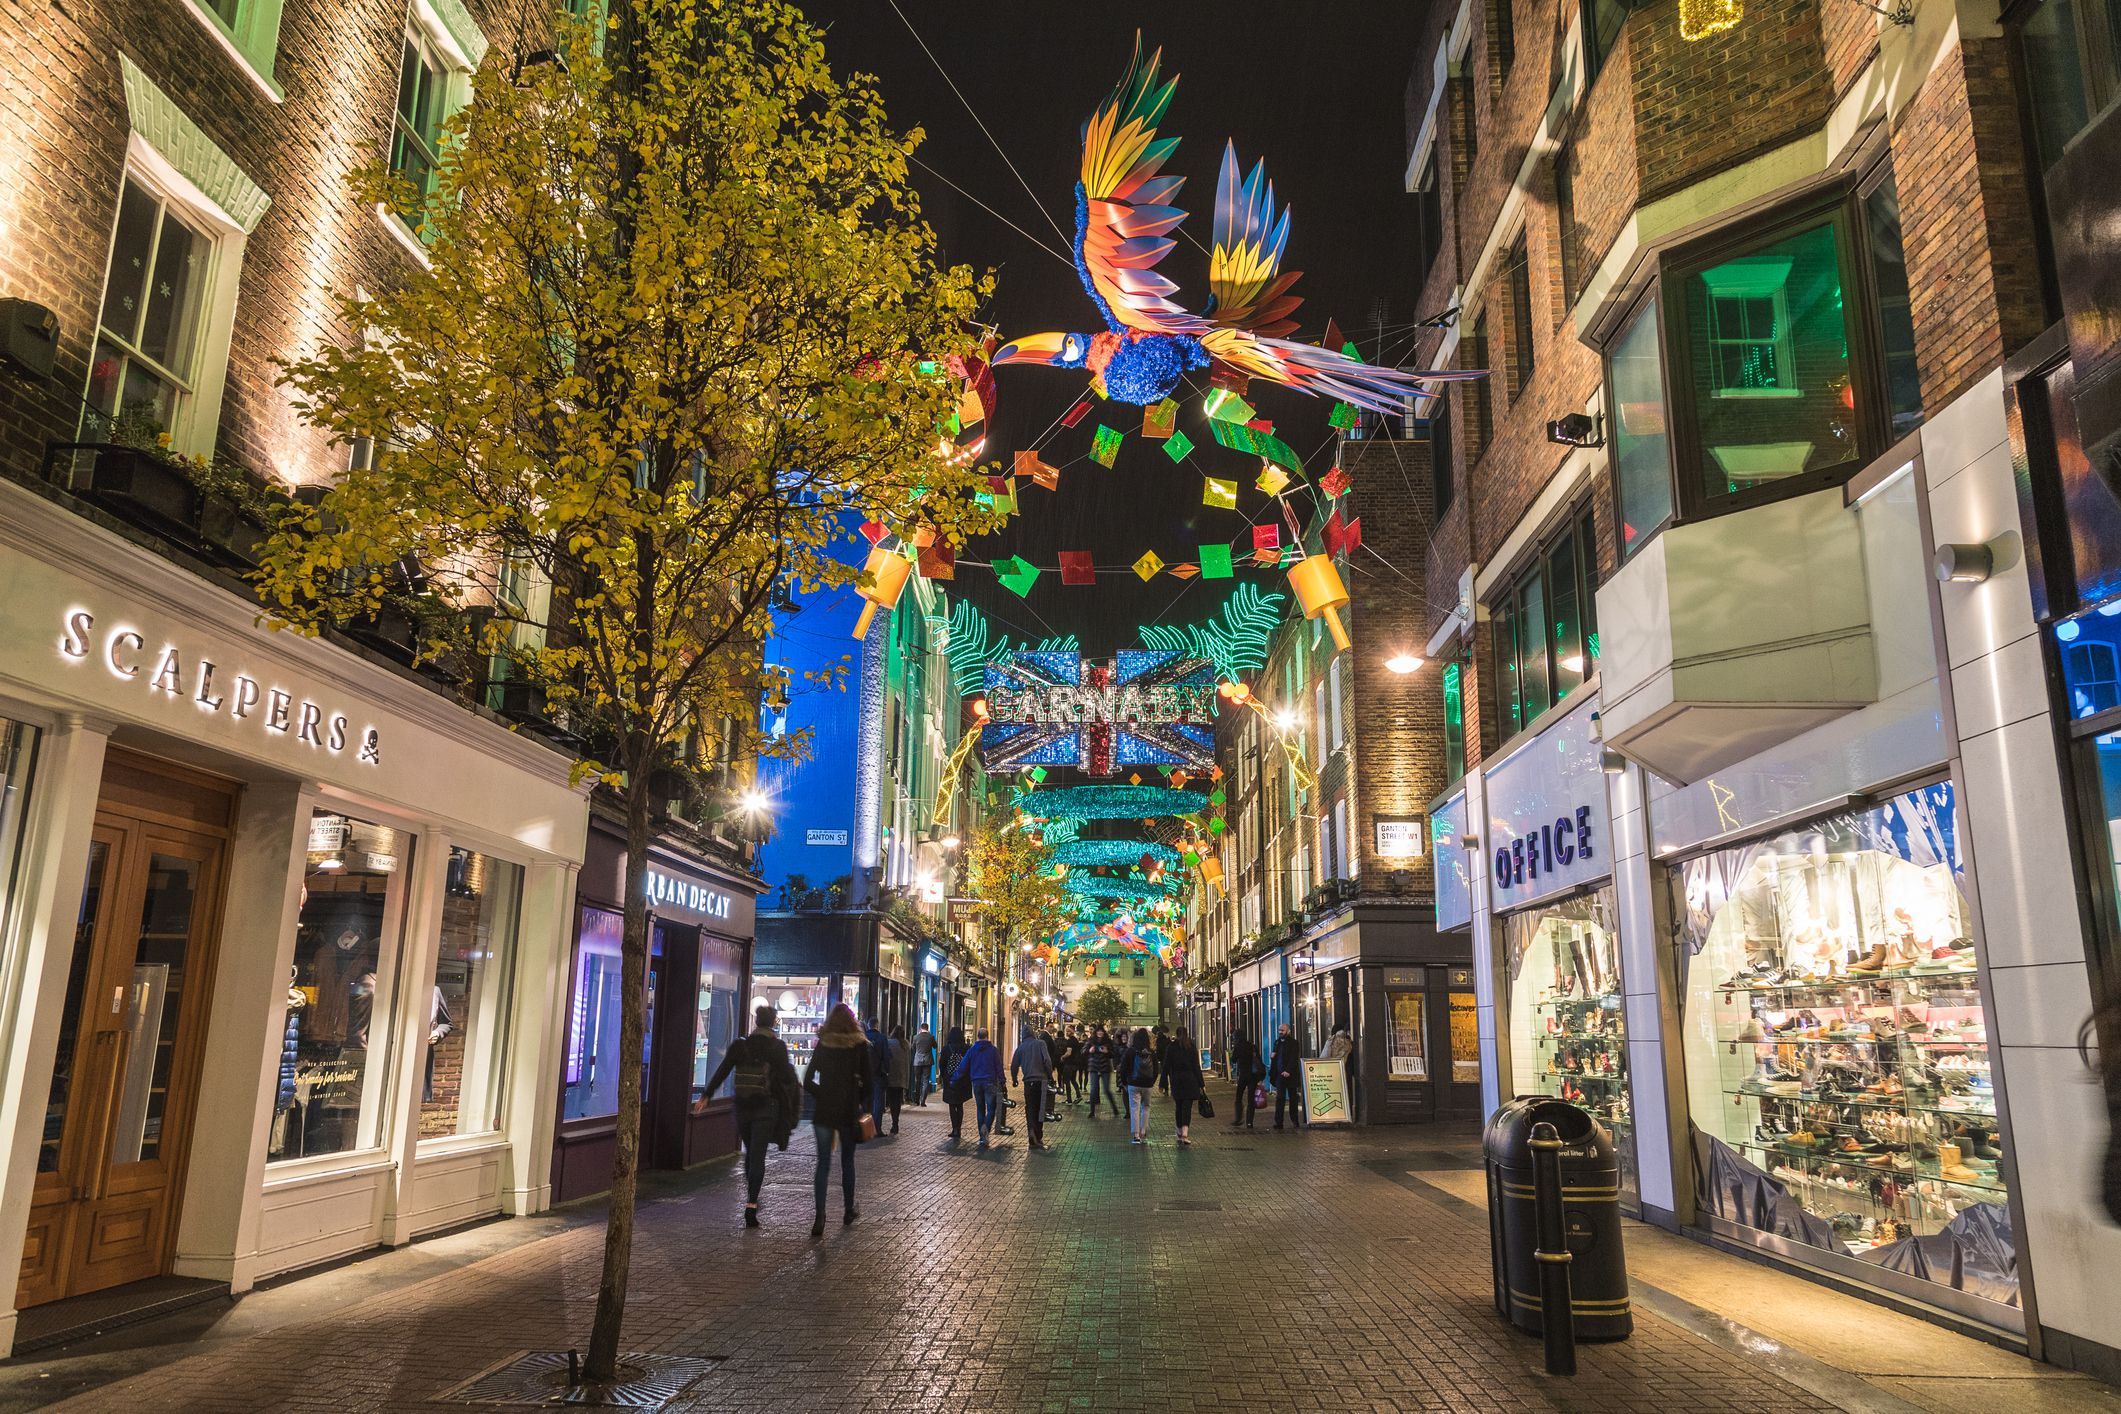 Carnaby Street during Christmas at night, London